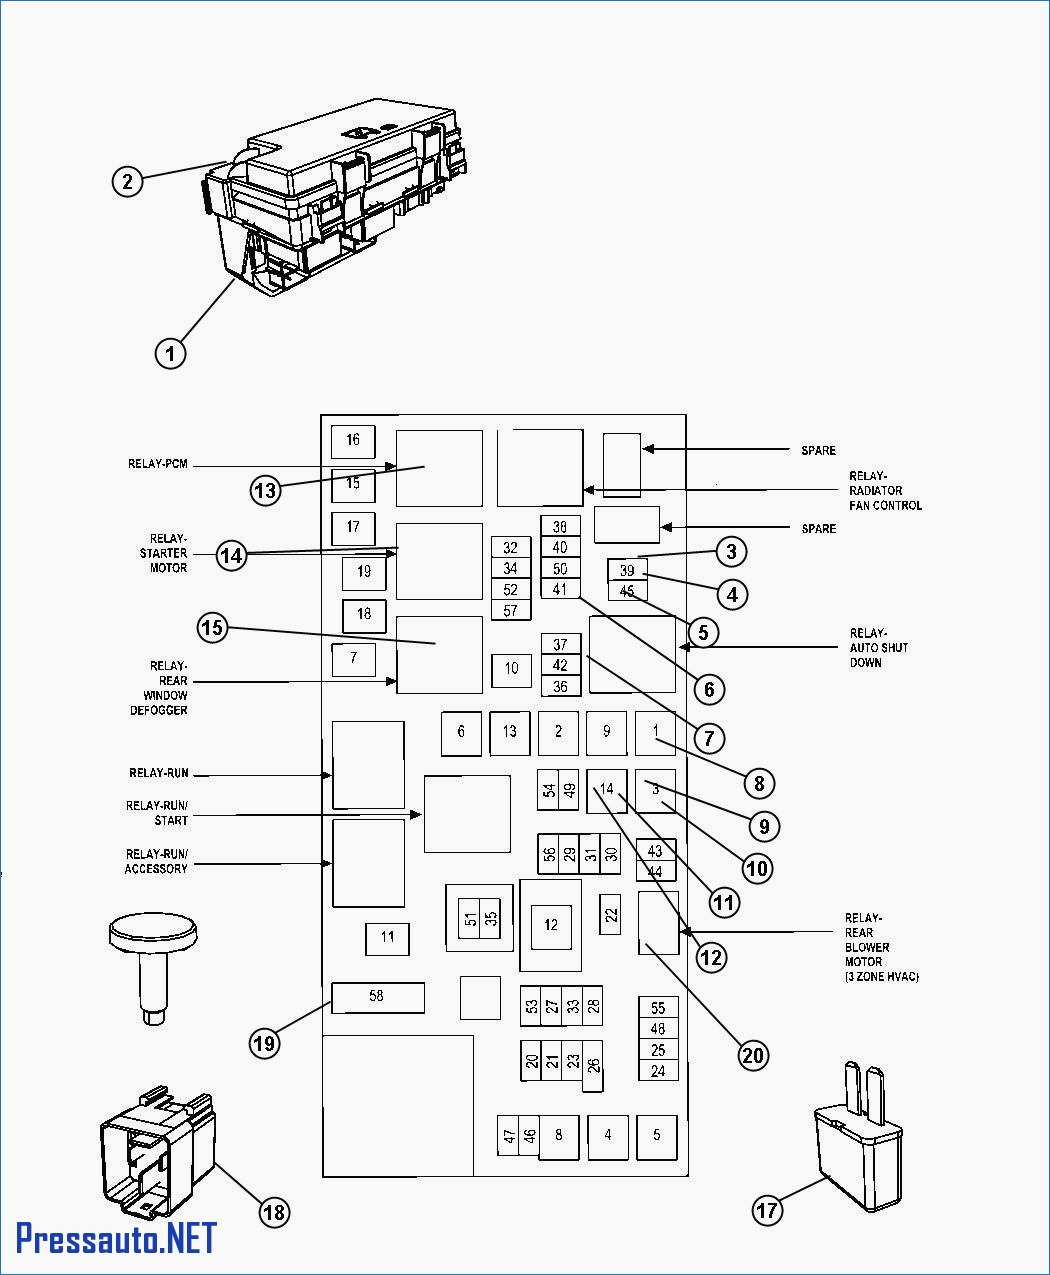 Wiring Diagram For 2008 Dodge Charger • Wiring Diagram For